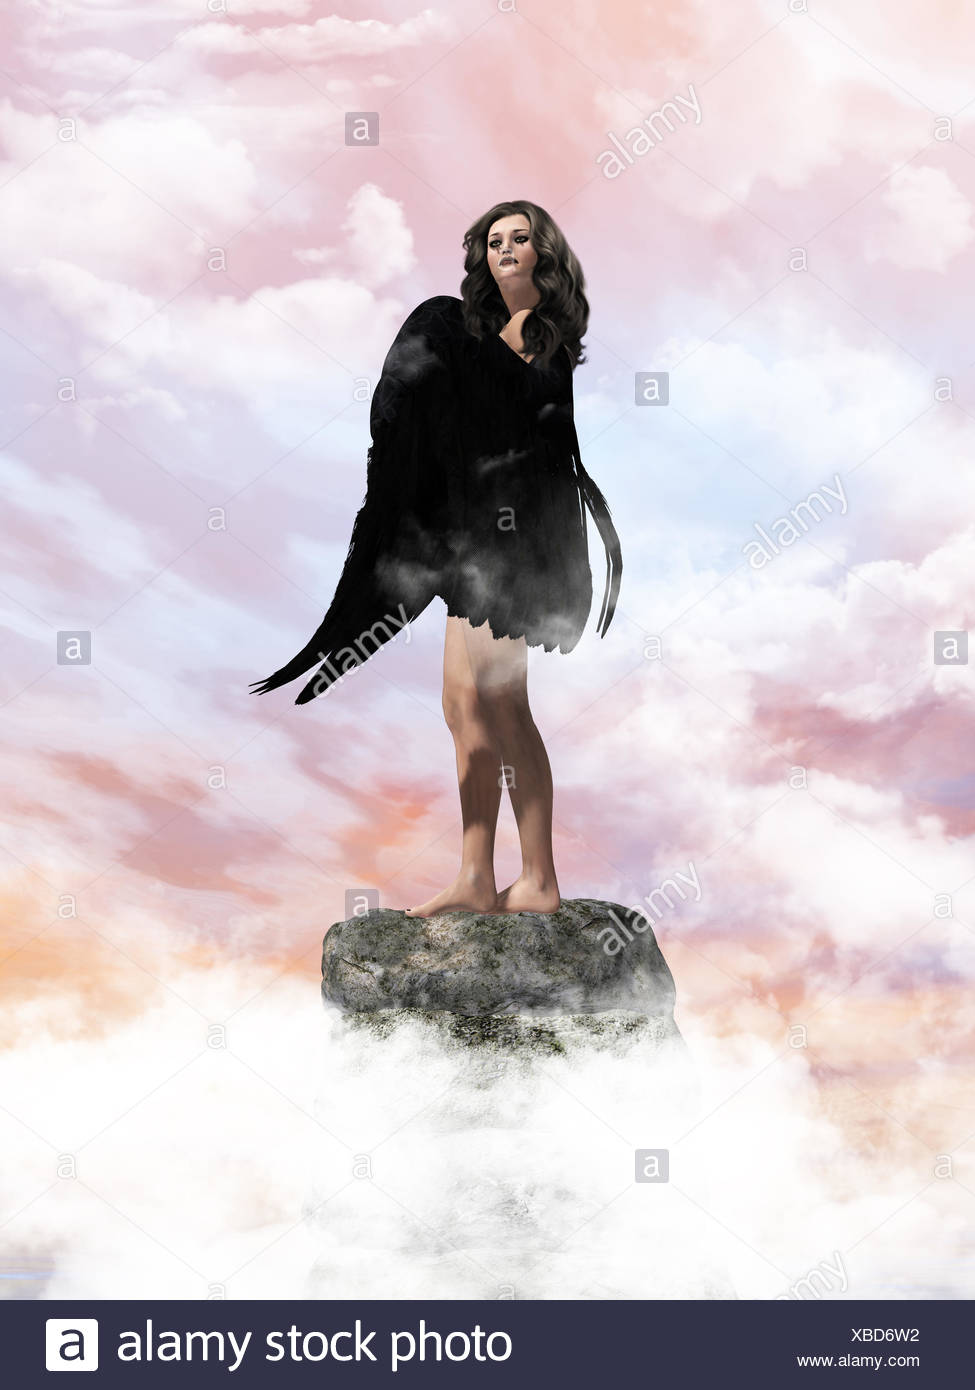 Angel In The Clouds - Stock Image